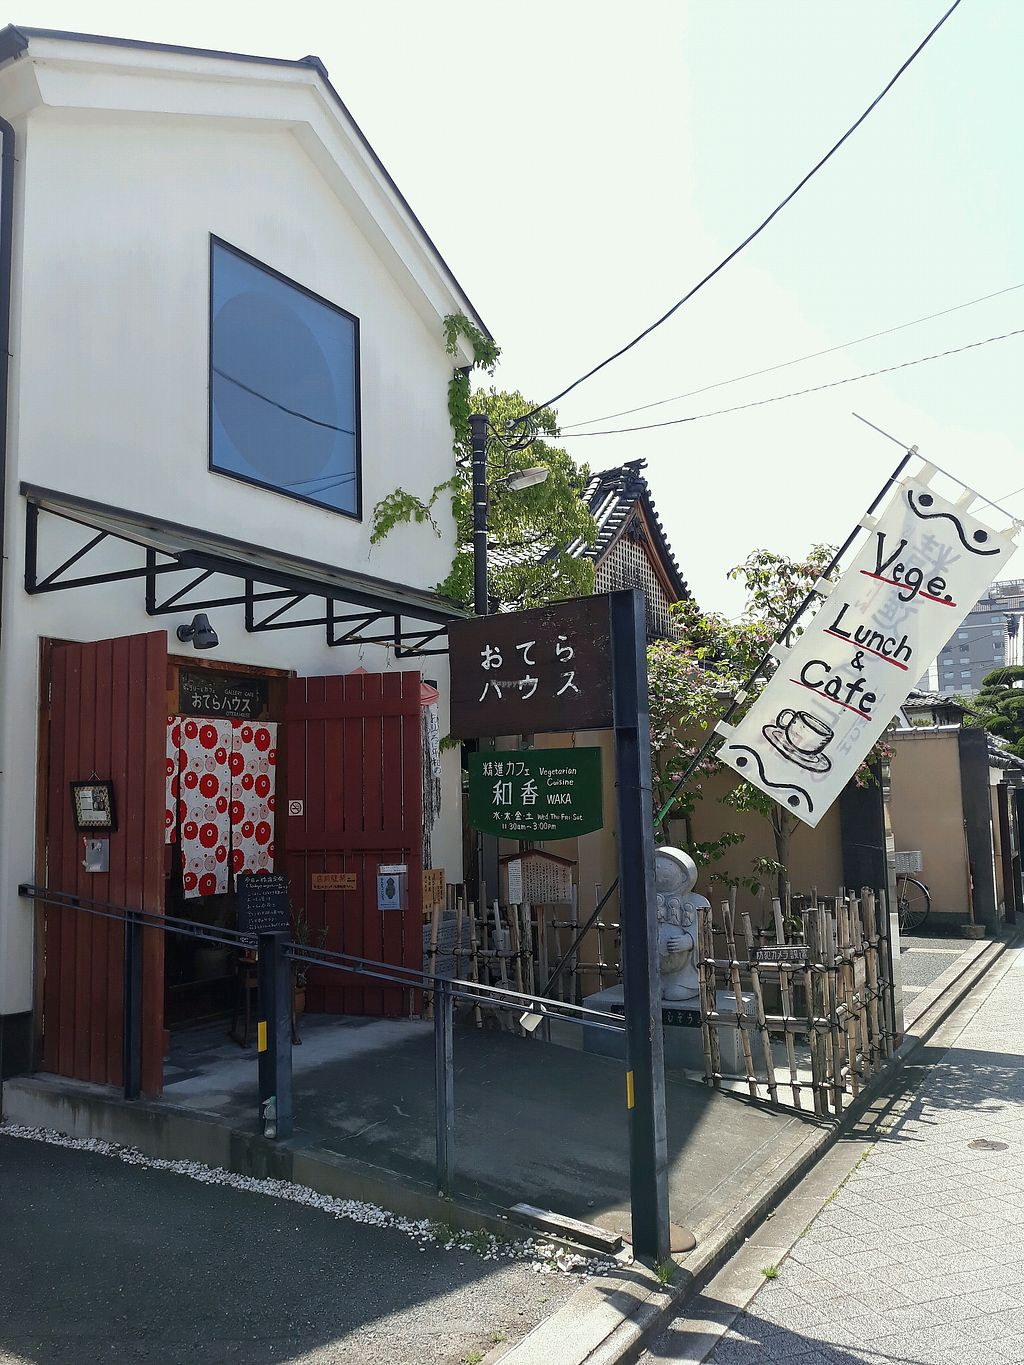 """Photo of Otera House - Shojin Cafe Waka  by <a href=""""/members/profile/mellowtrouble"""">mellowtrouble</a> <br/>entrance <br/> April 20, 2018  - <a href='/contact/abuse/image/62596/388343'>Report</a>"""